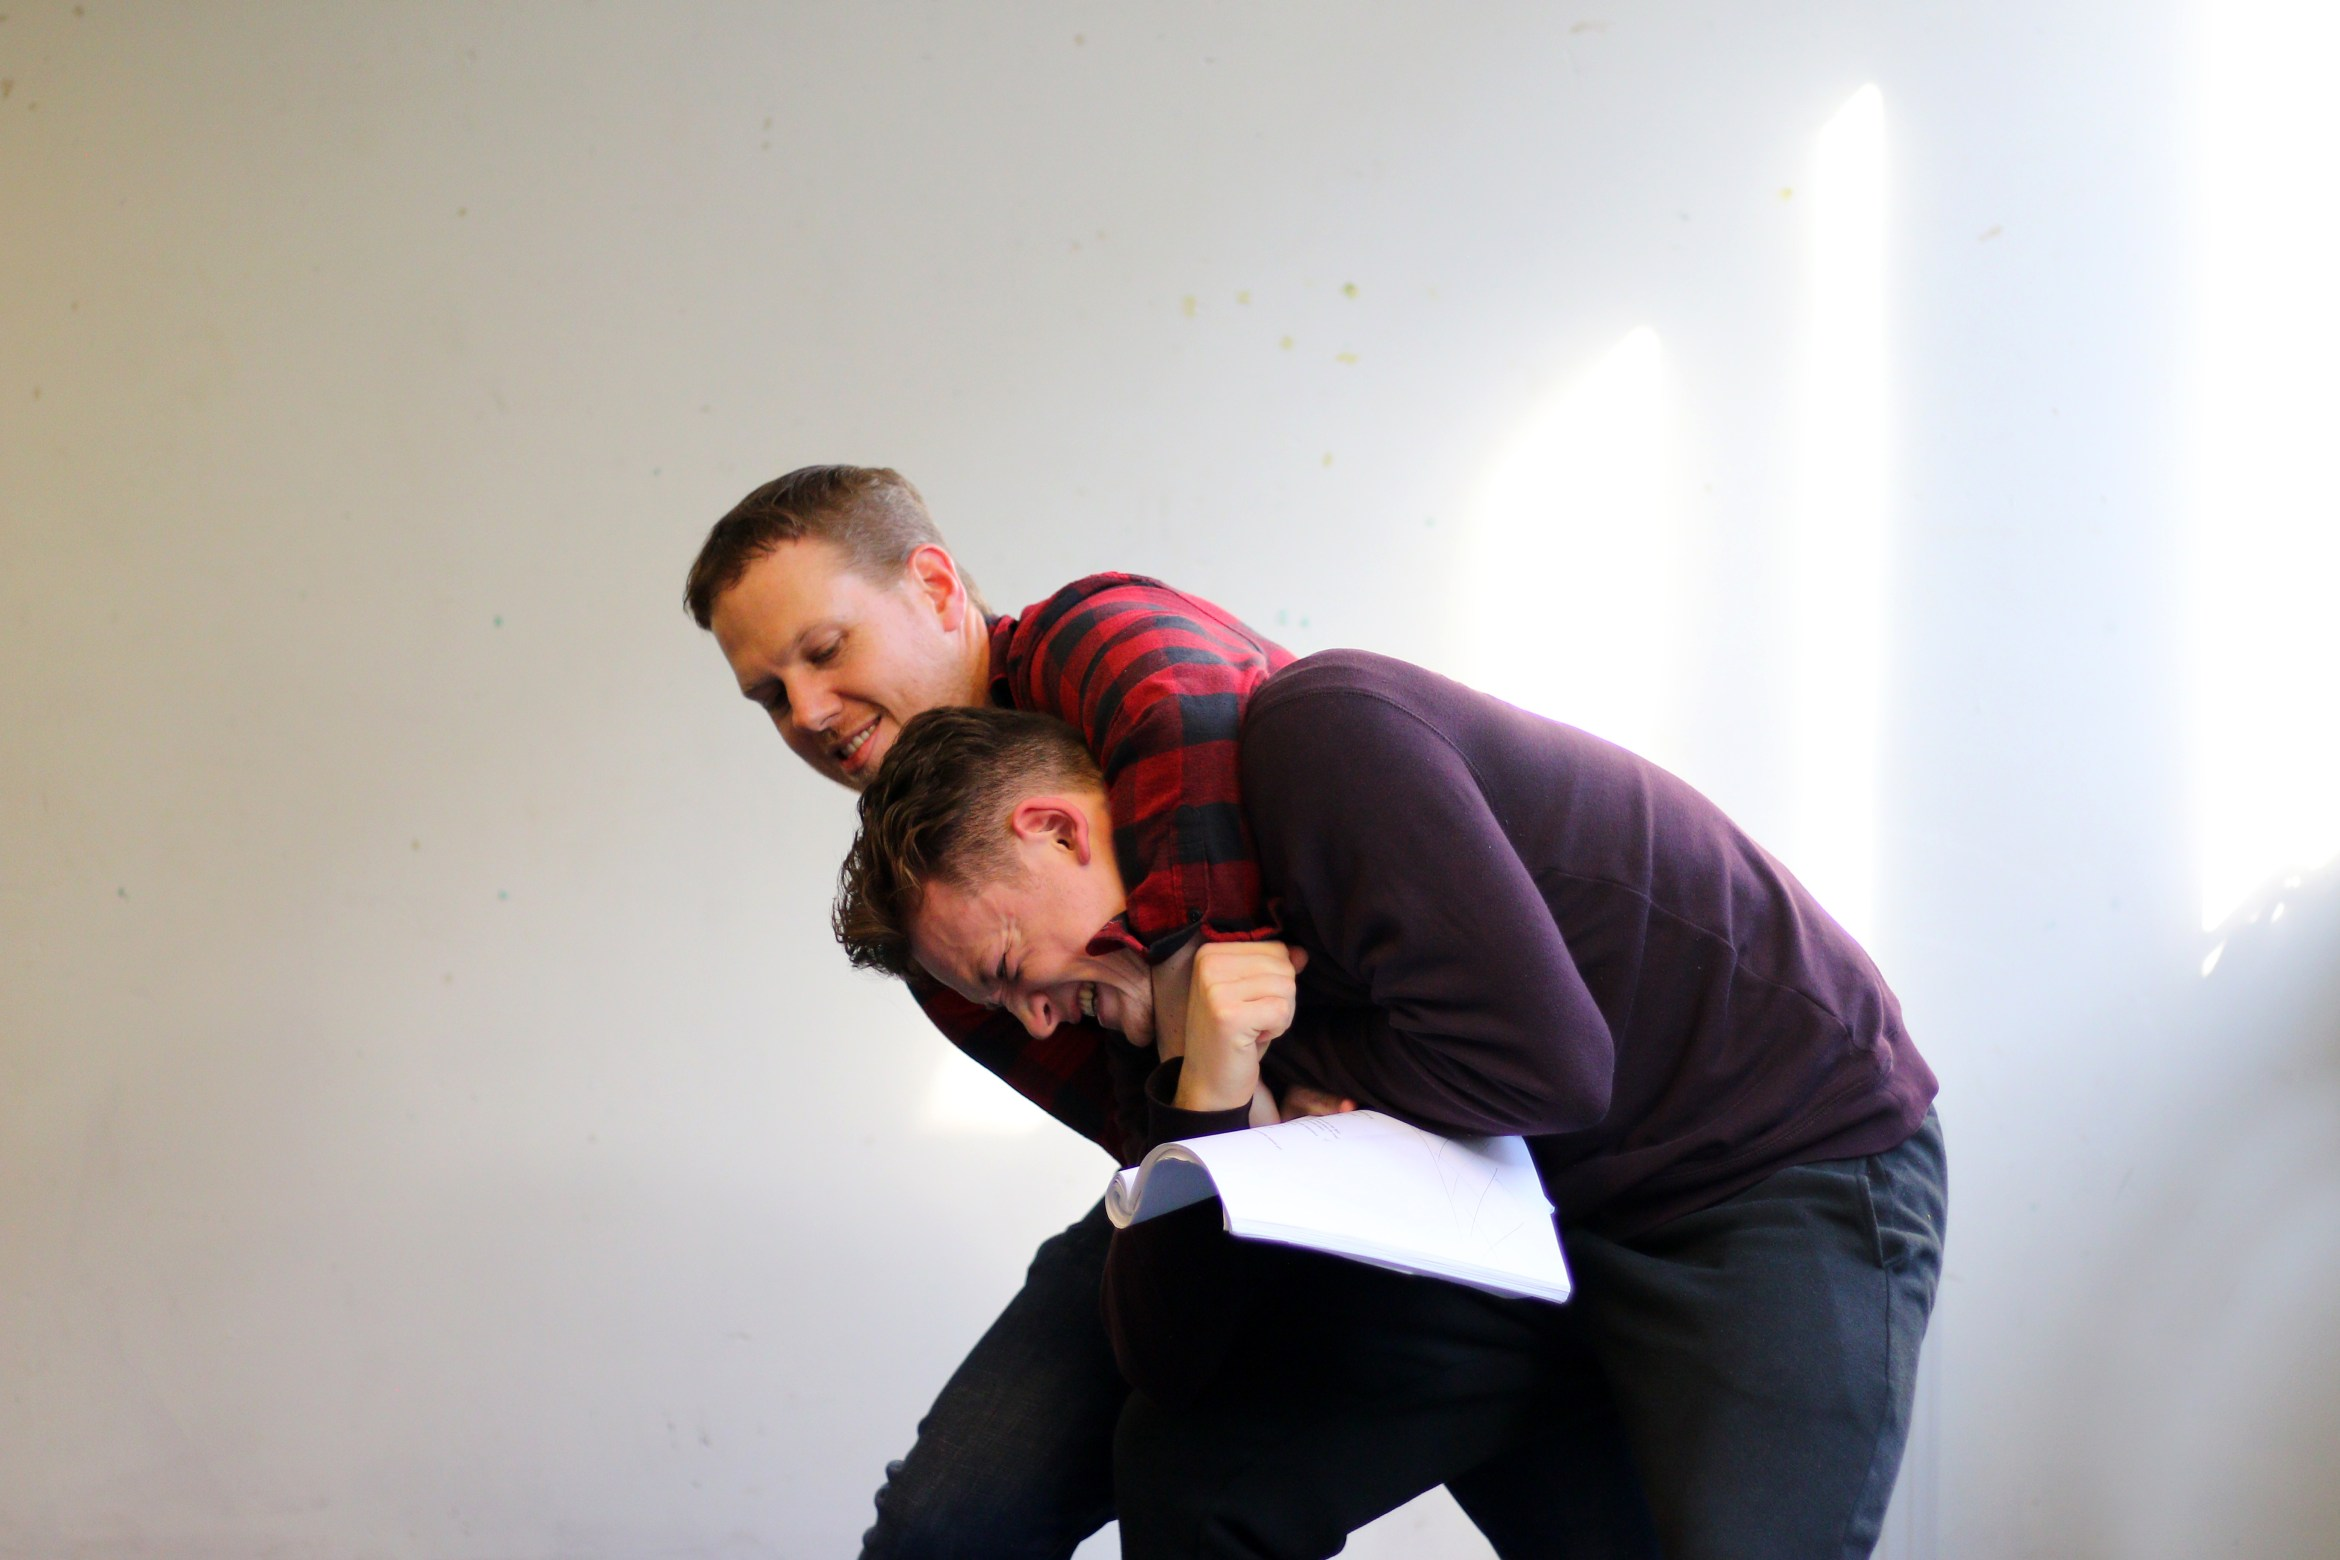 Rehearsal Images - Plastic, Old Red Lion (courtesy of Mathew Foster) (11)